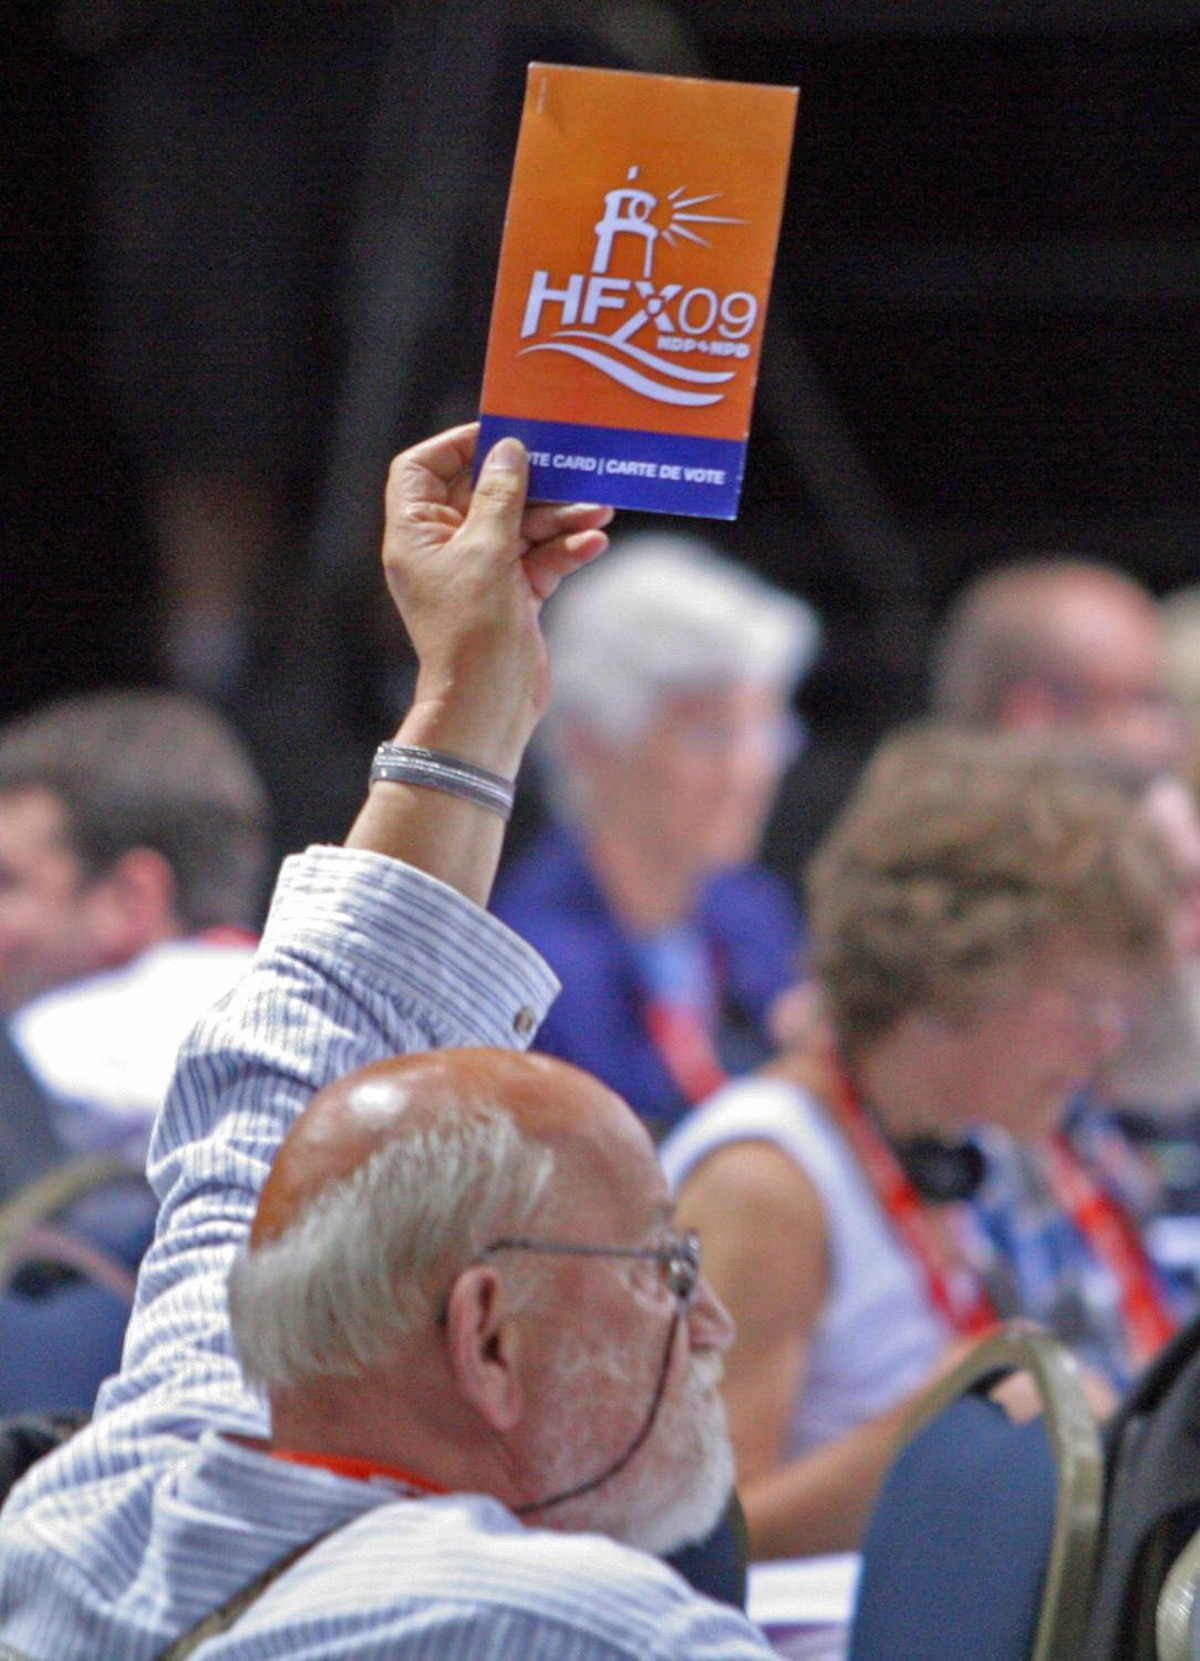 A delegate votes on a procedural motion during the opening session of the NDP national convention in Halifax.